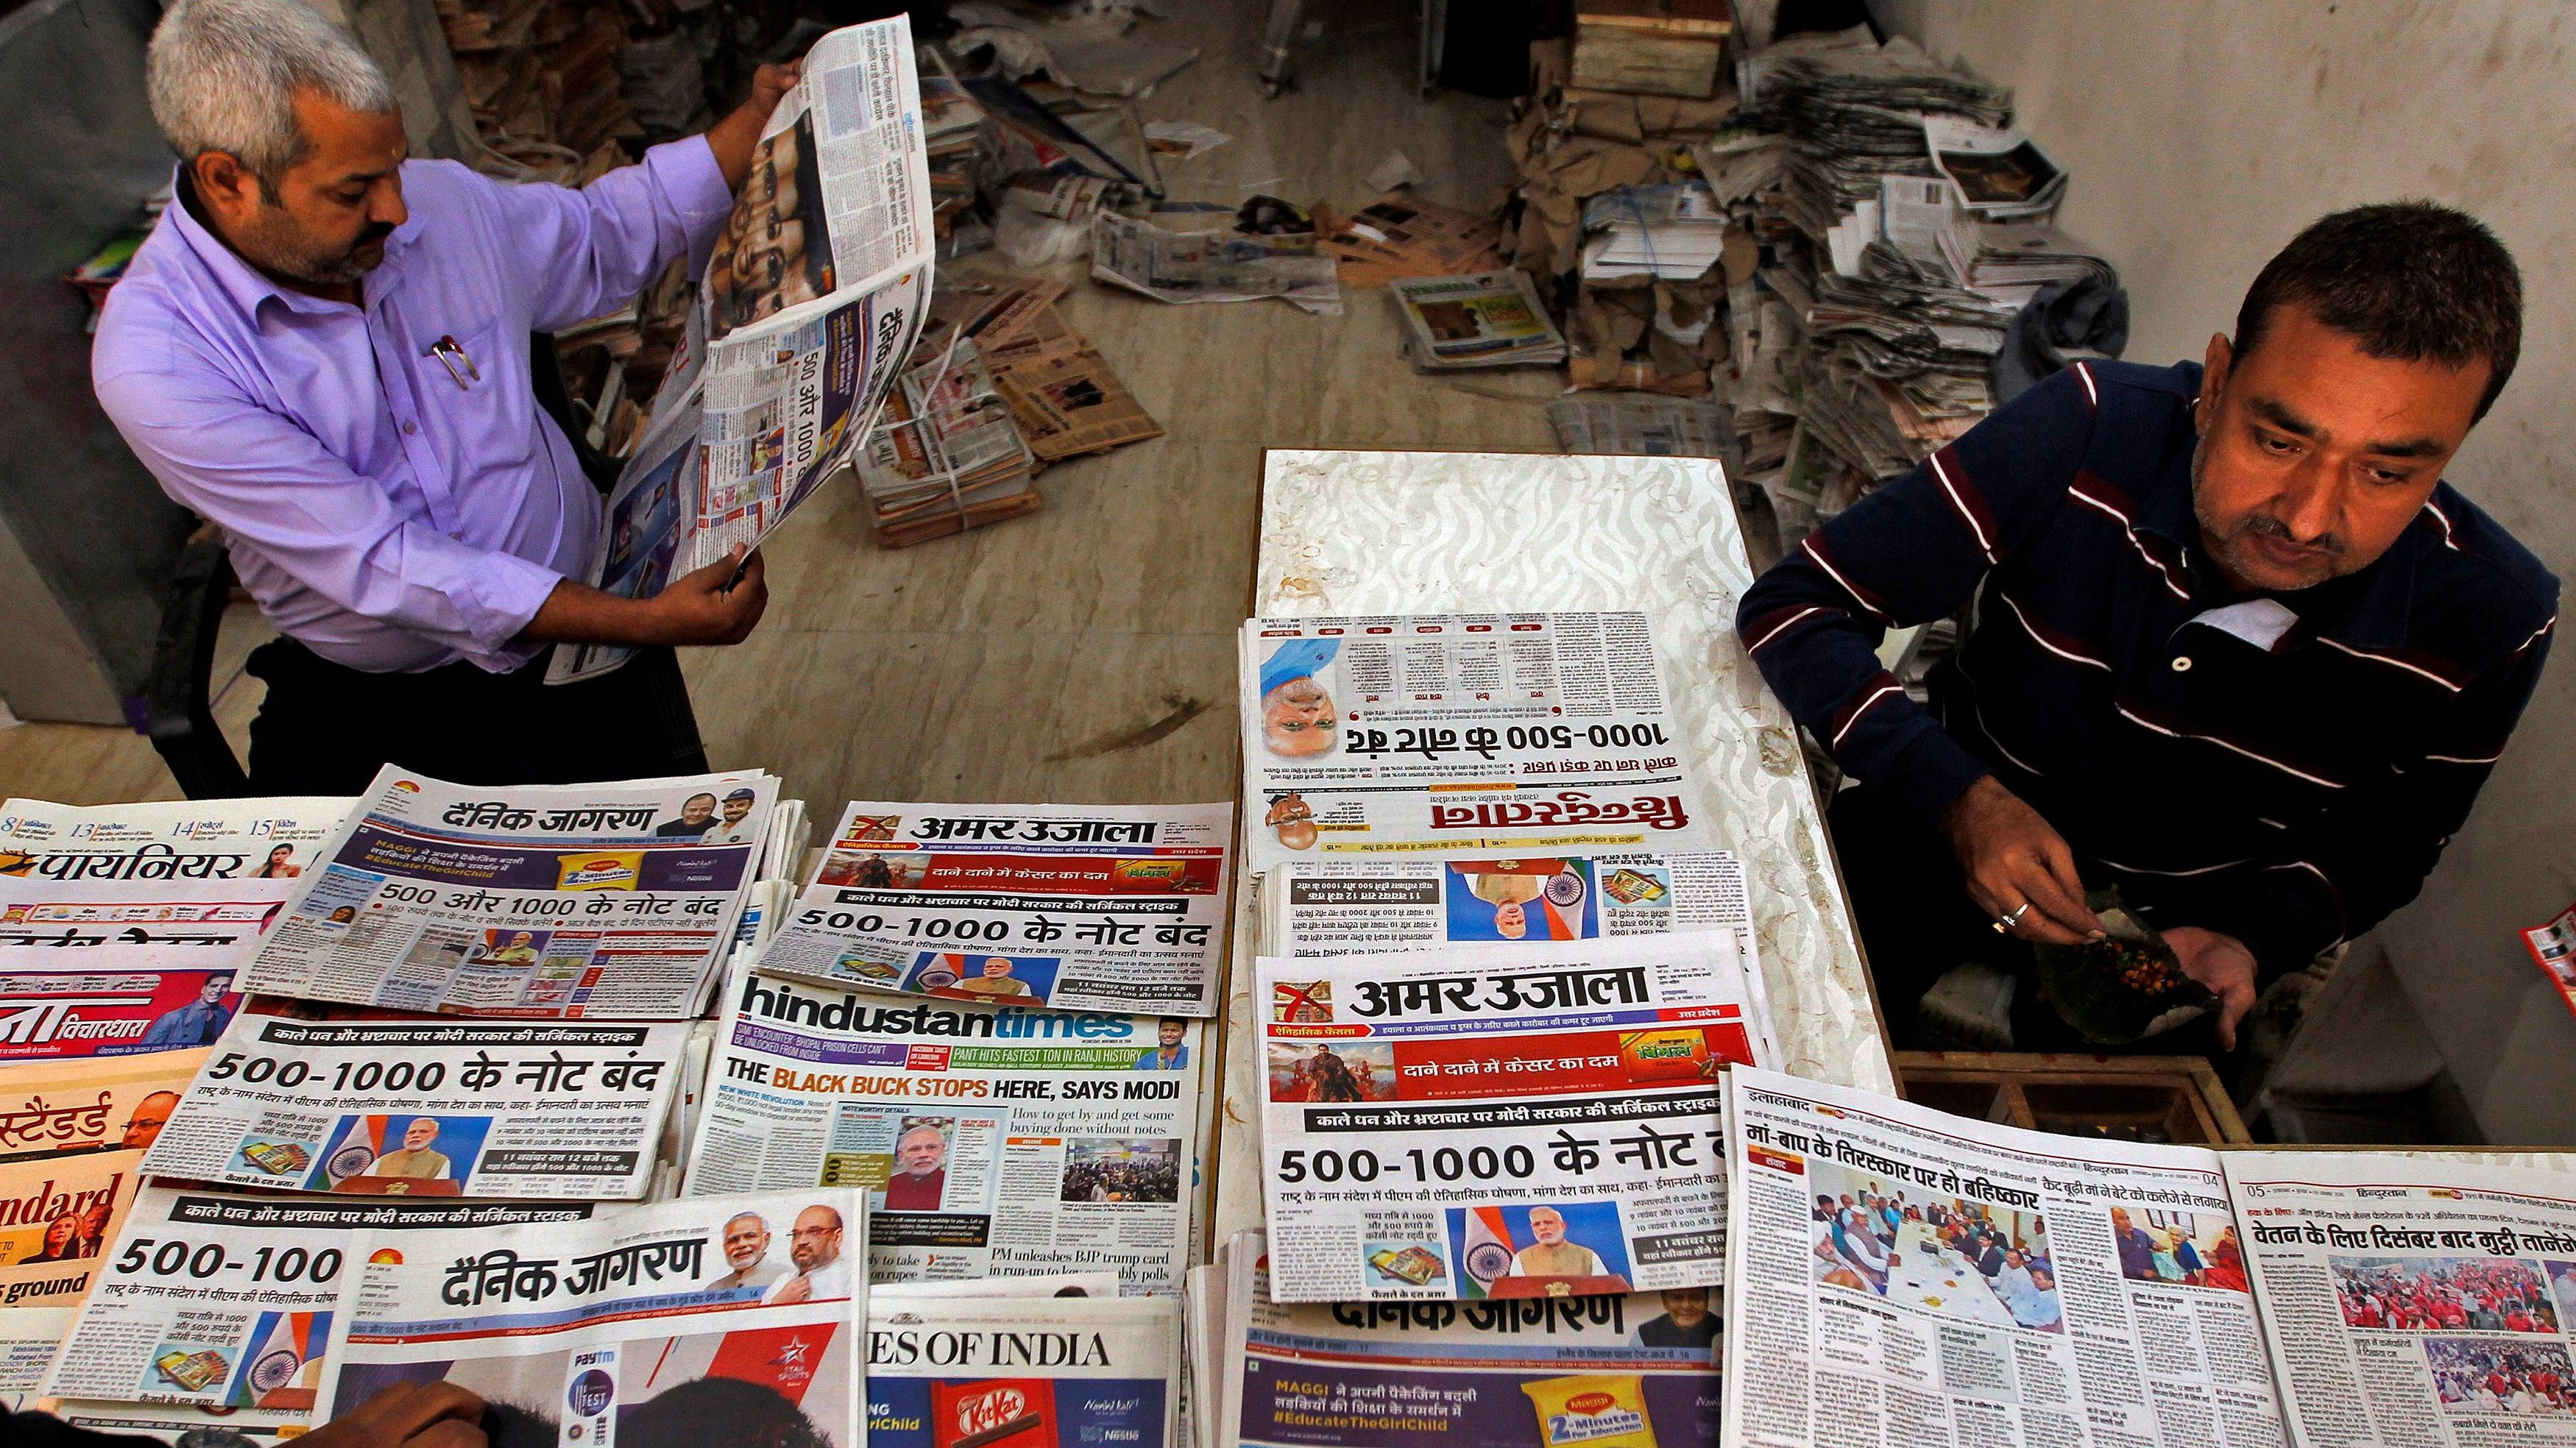 A man reads a cover story in a daily national newspaper about the withdrawal of 500 and 1000 rupee banknotes from circulation across India, at a roadside stall in Allahabad